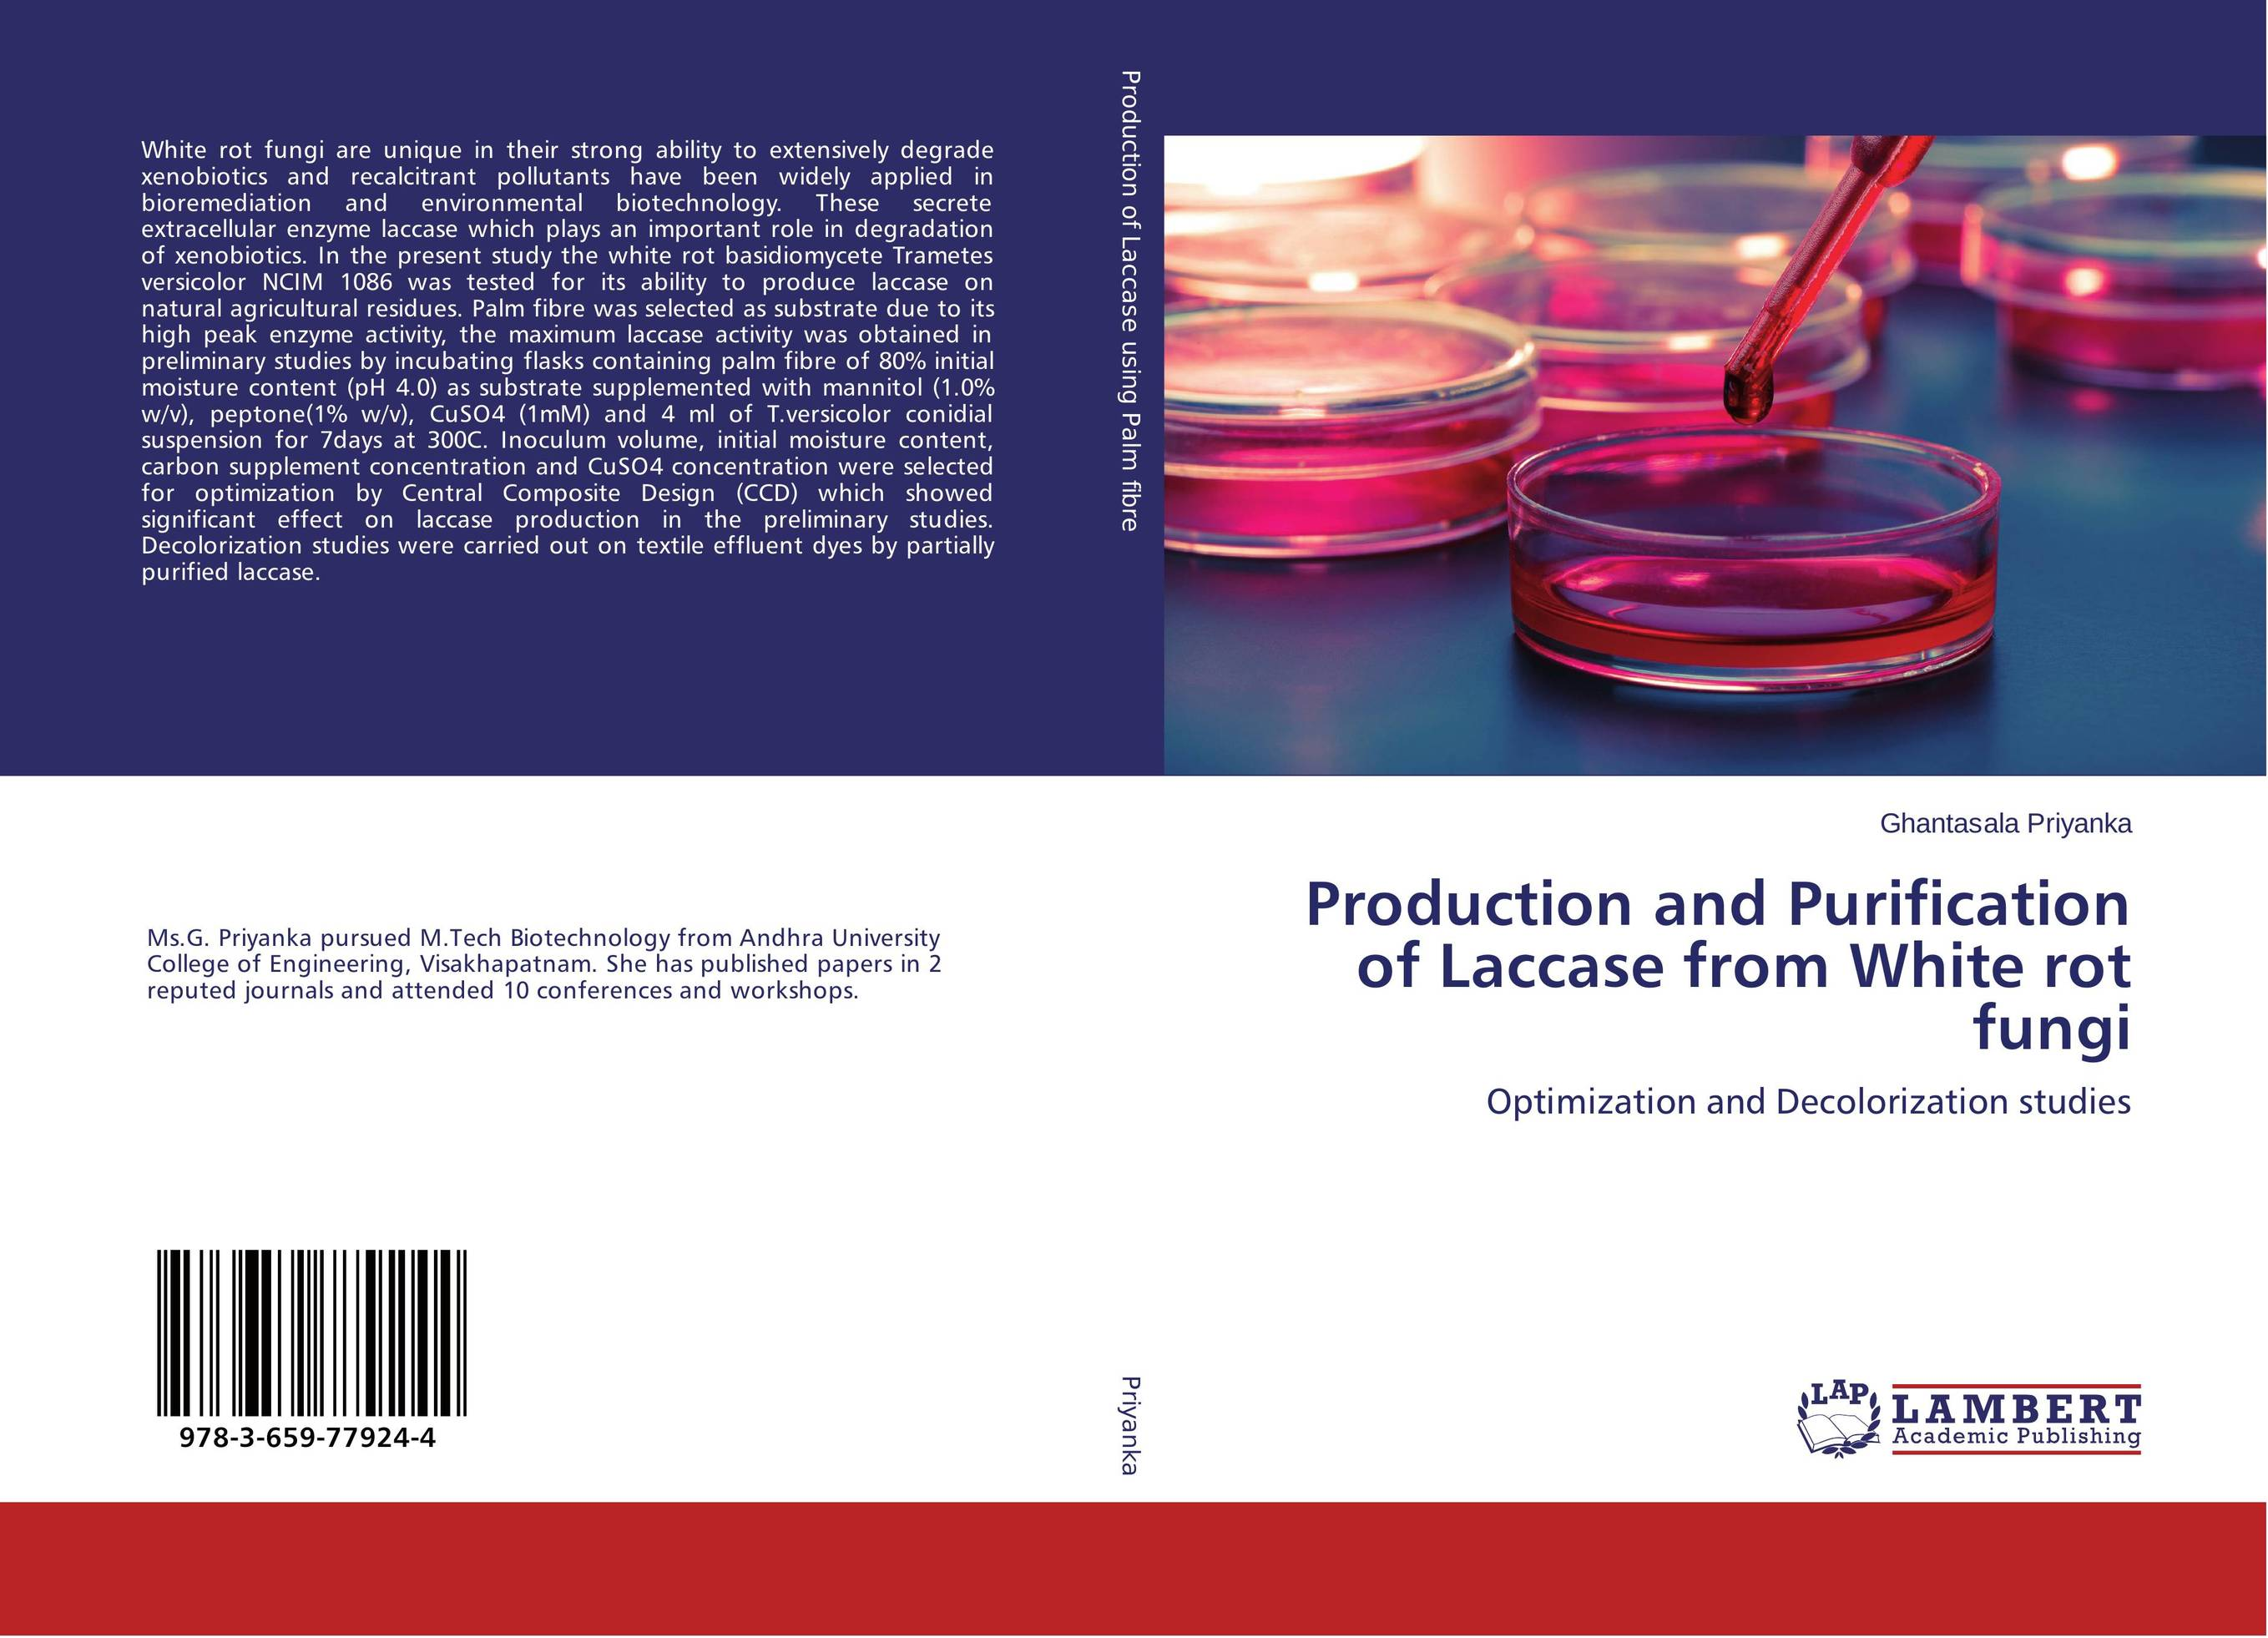 Production and Purification of Laccase from White rot fungi production and purification of laccase from white rot fungi